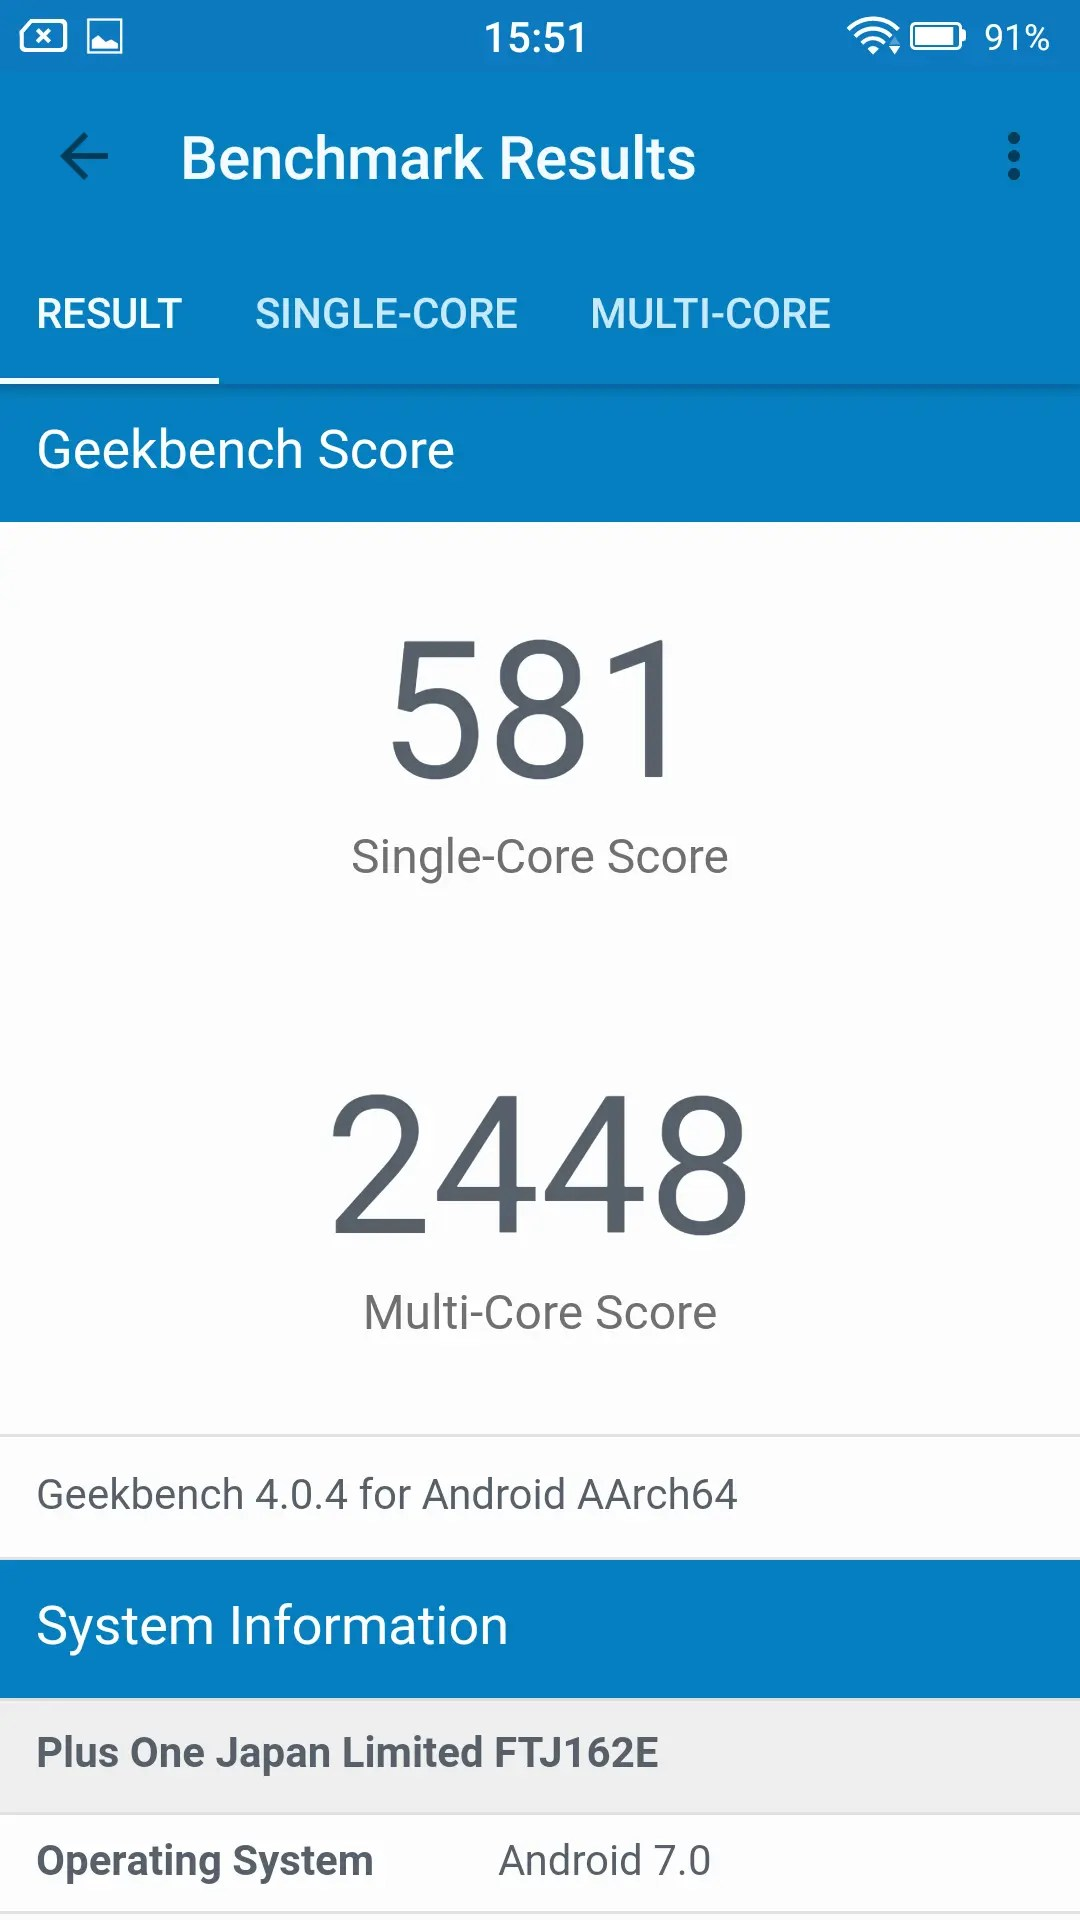 FREETEL RAIJIN Geekbench 581